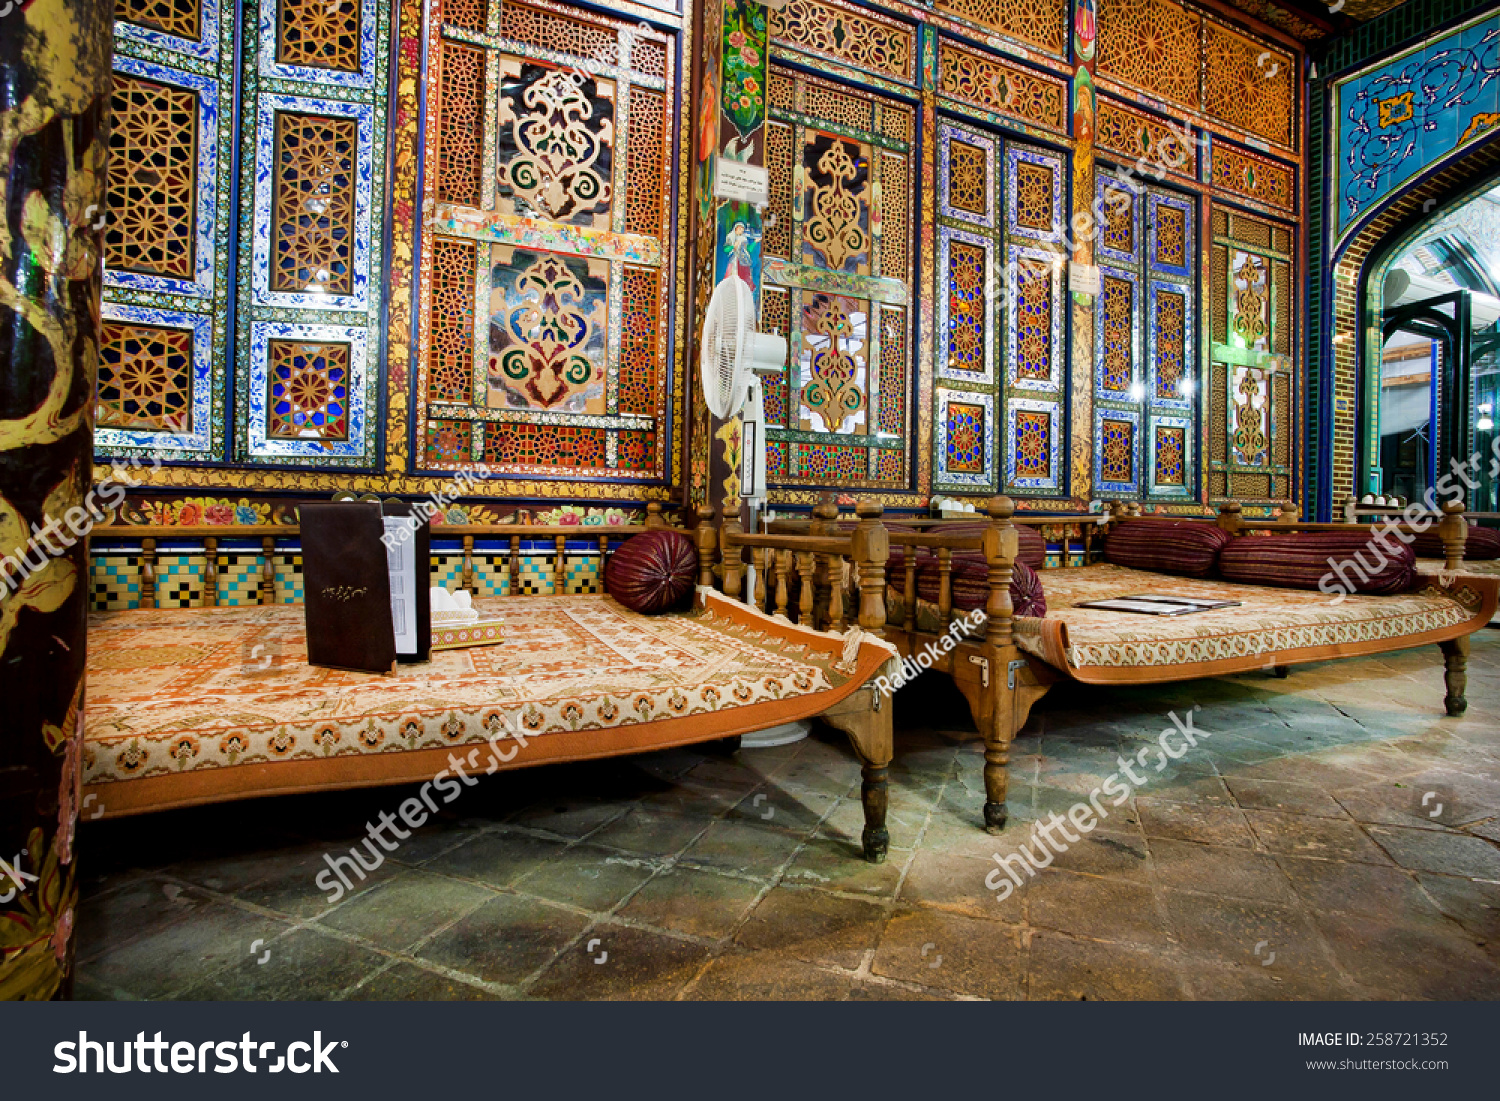 Isfahan Iran Oct 15 Interior Design Of Traditional